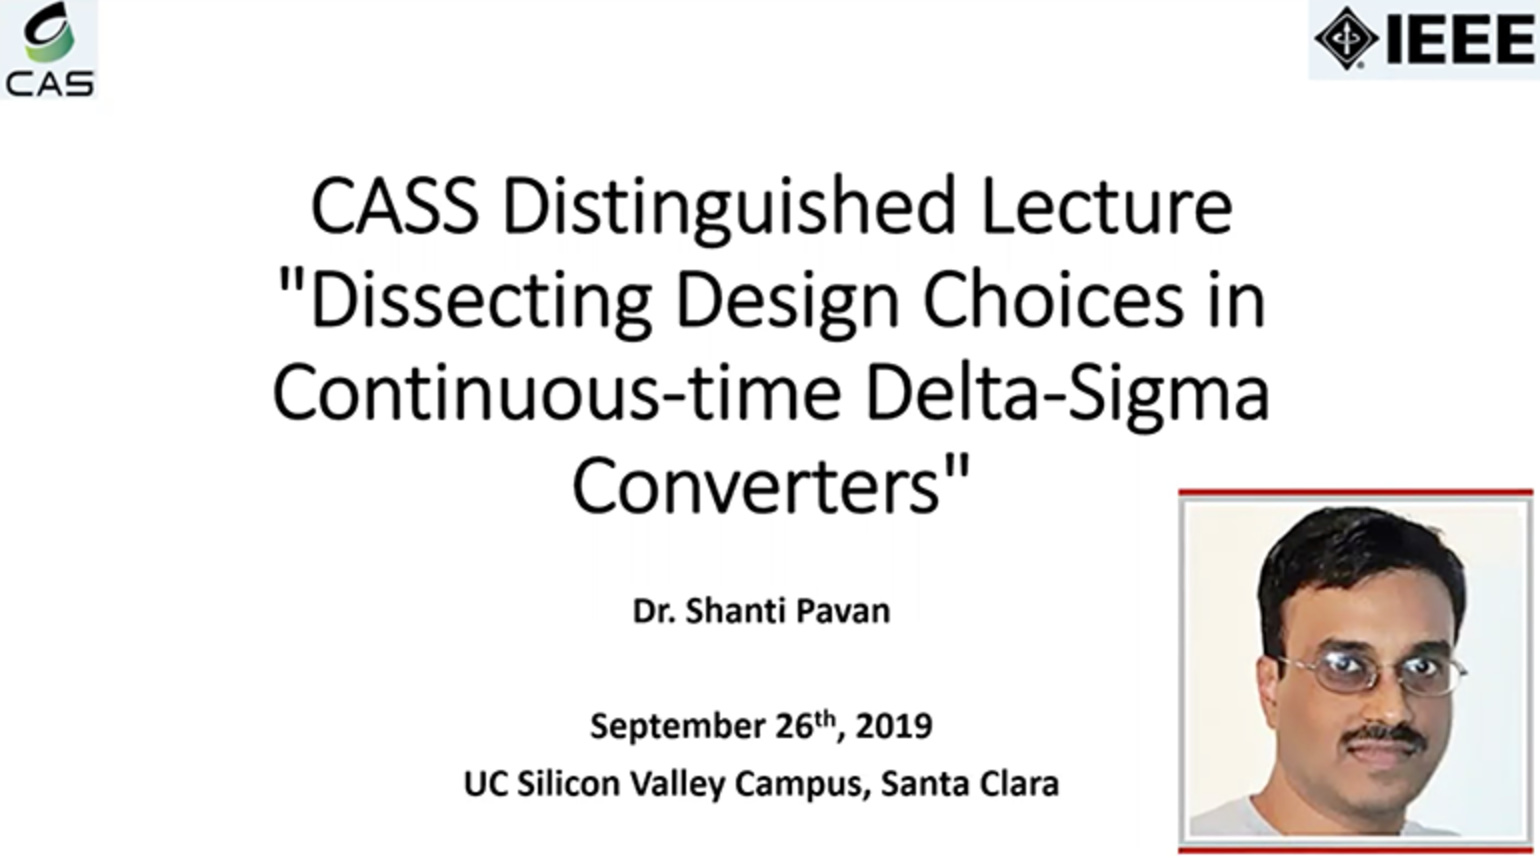 Dissecting Design Choices in Continuous-time Delta-Sigma Converters